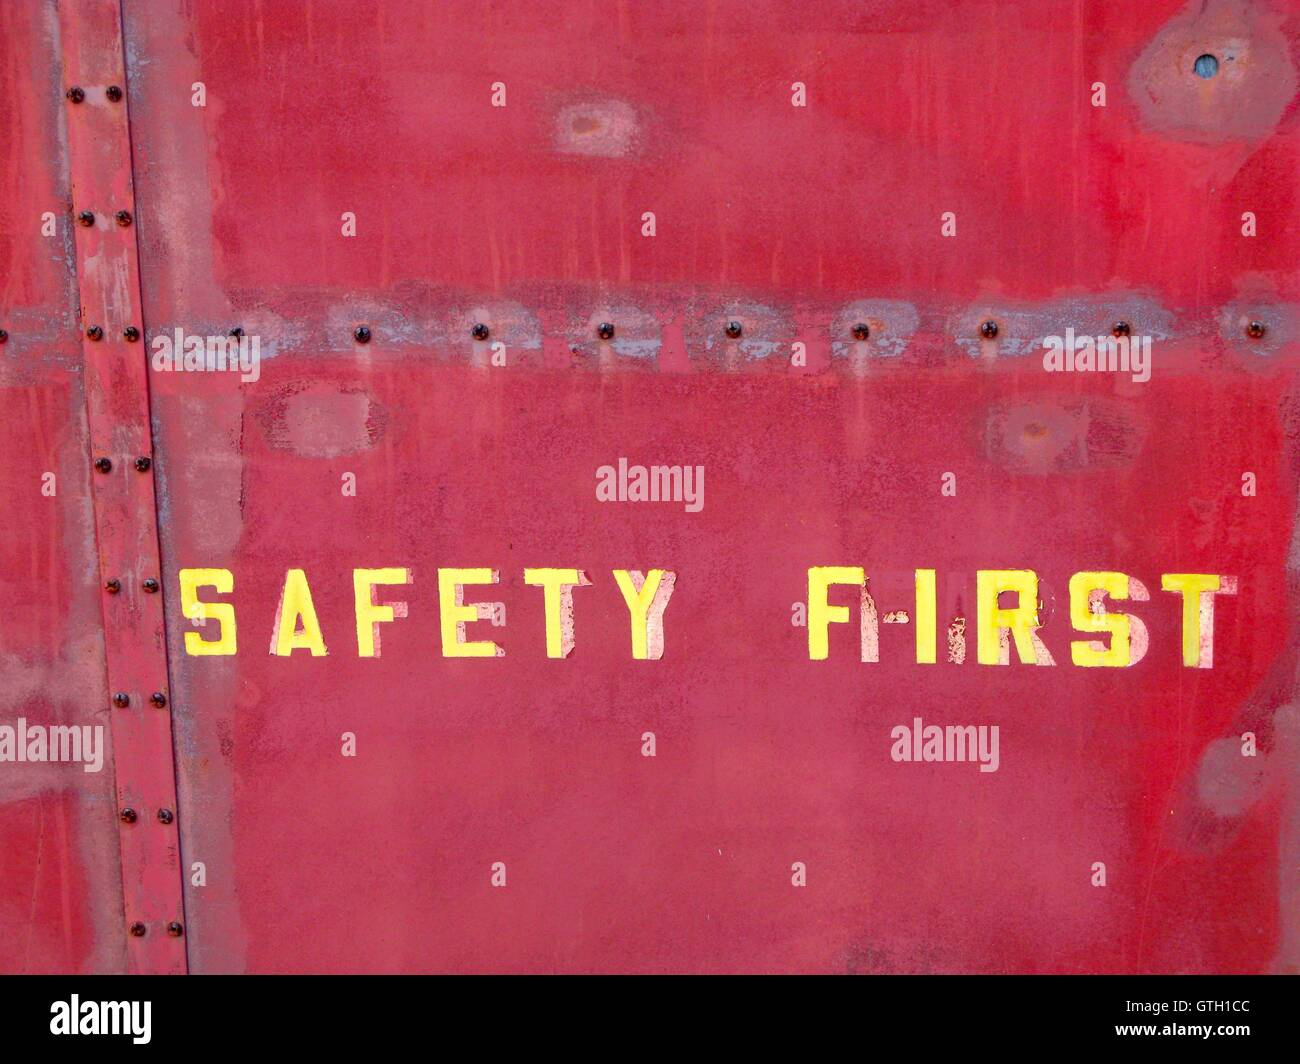 Old rail car with safety warning for workers 'Safety First' - Stock Image